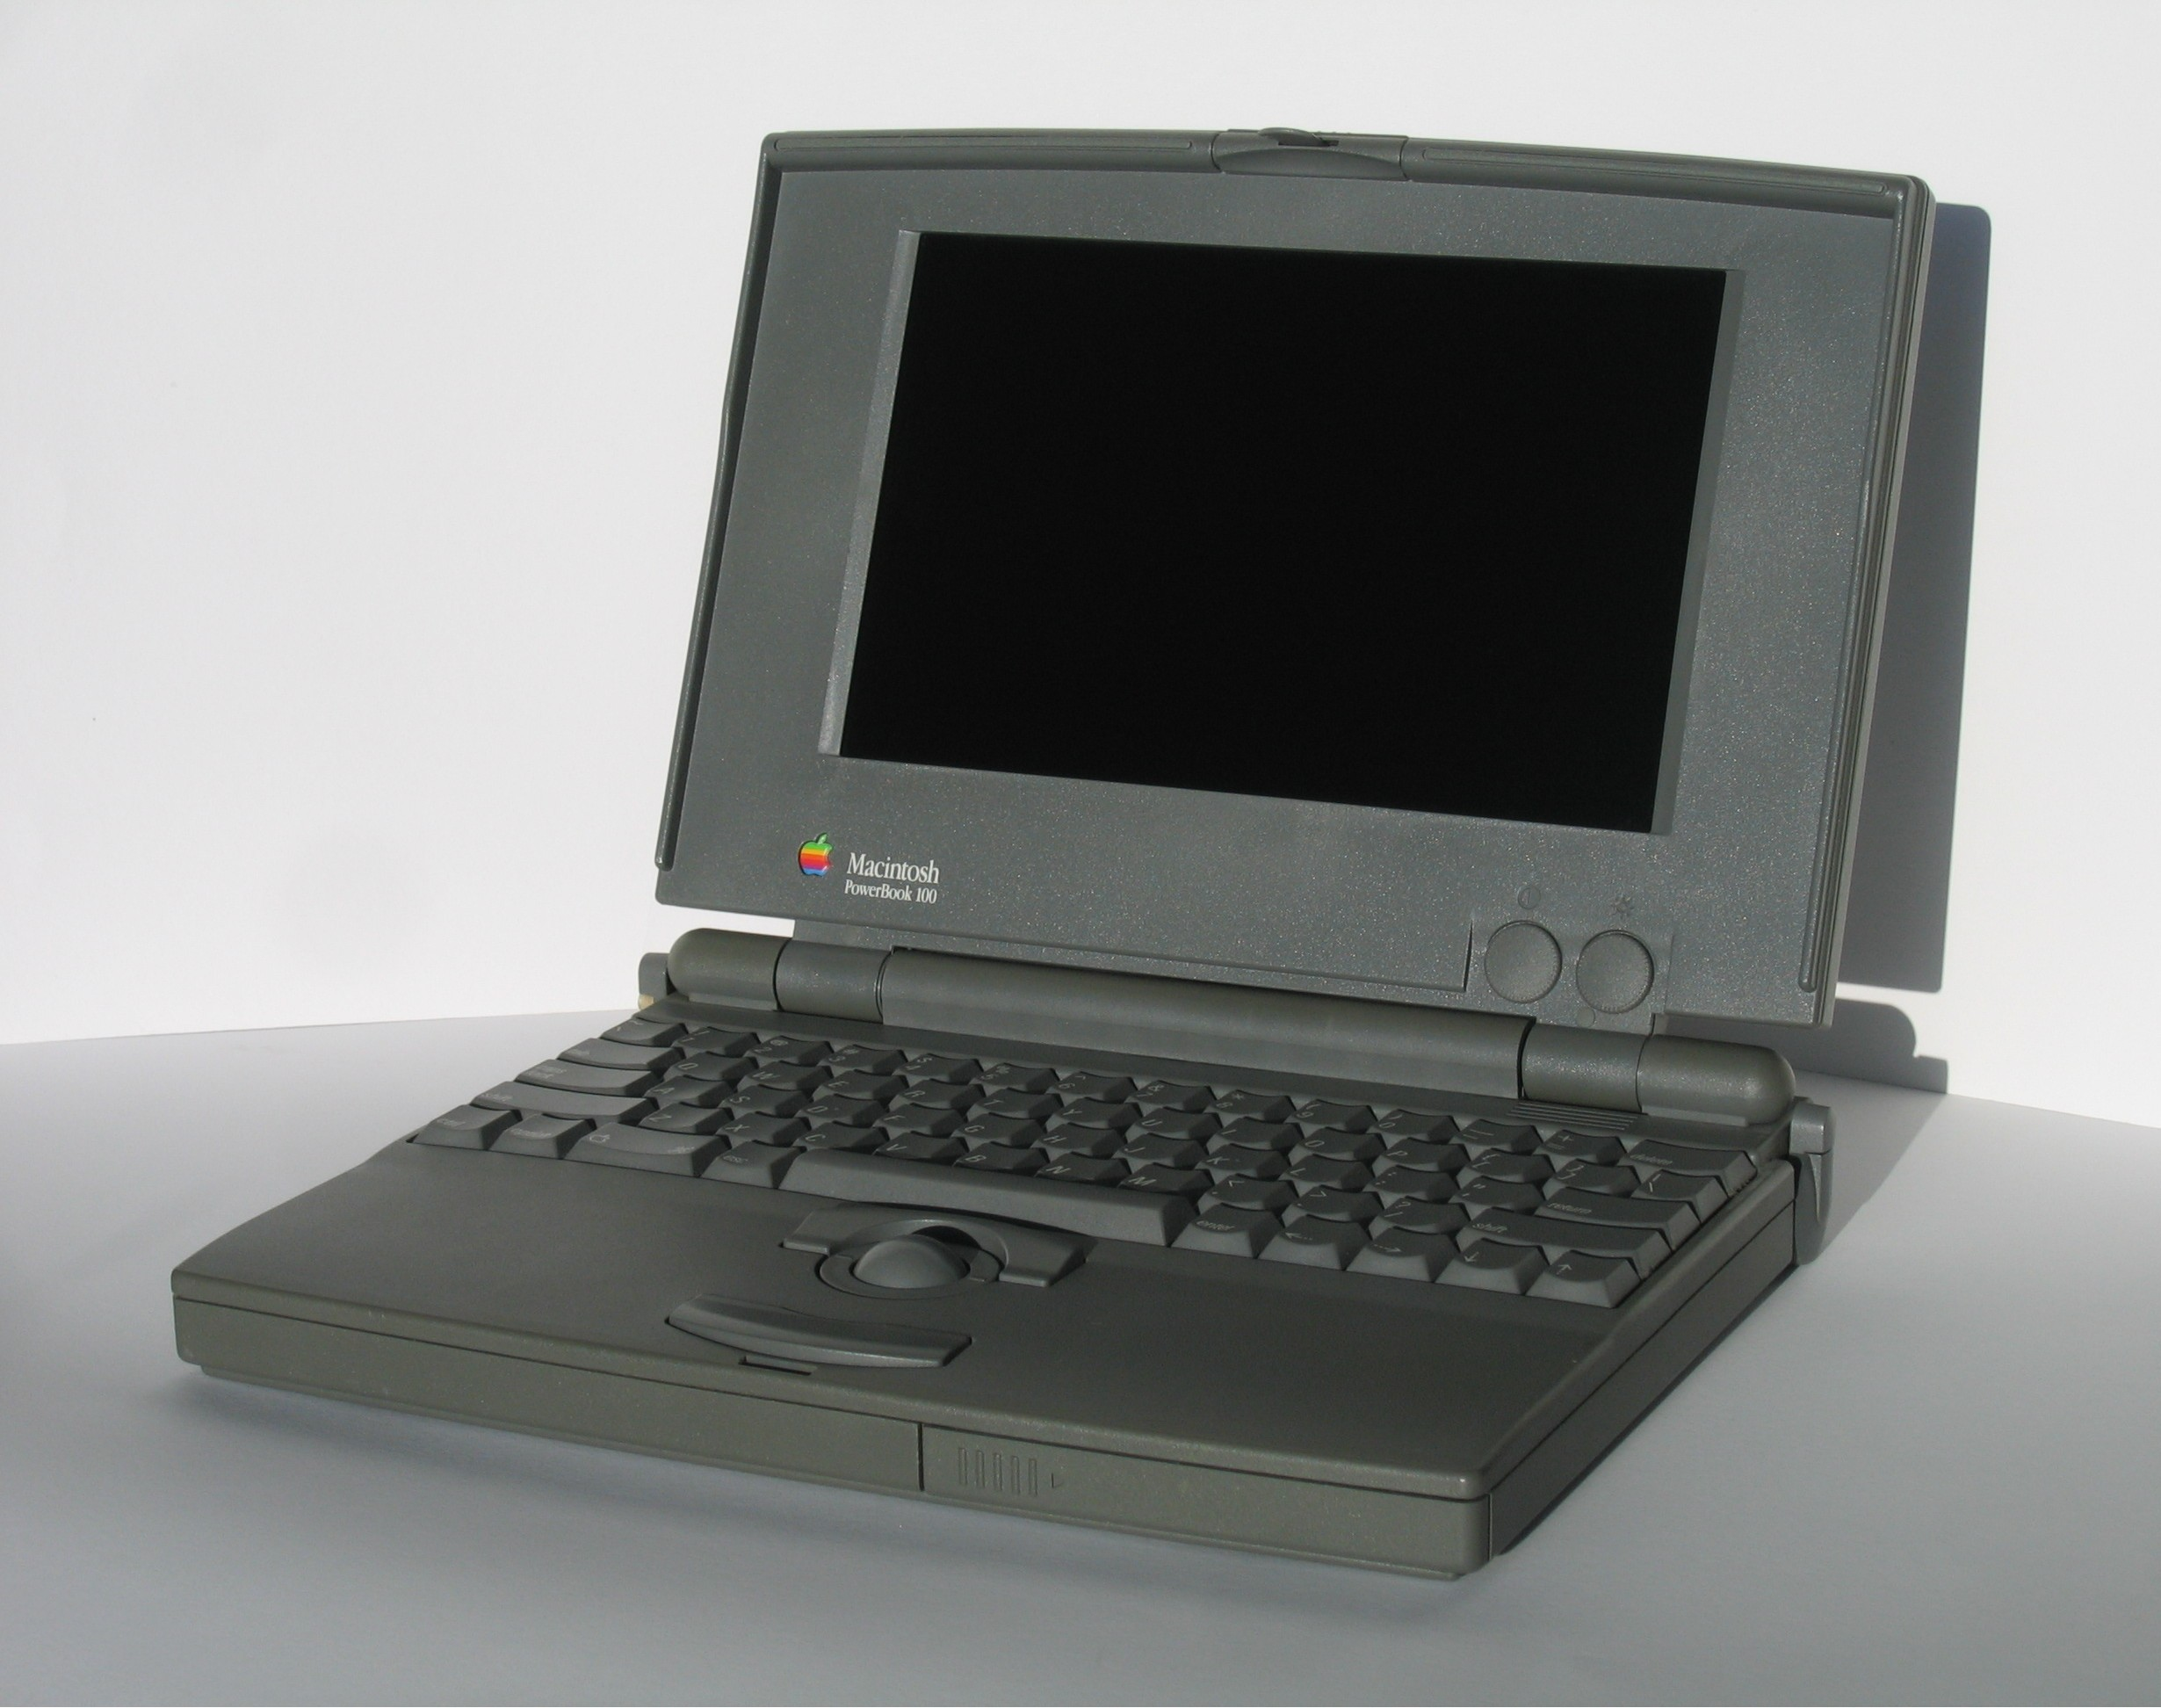 ApplePowerbook